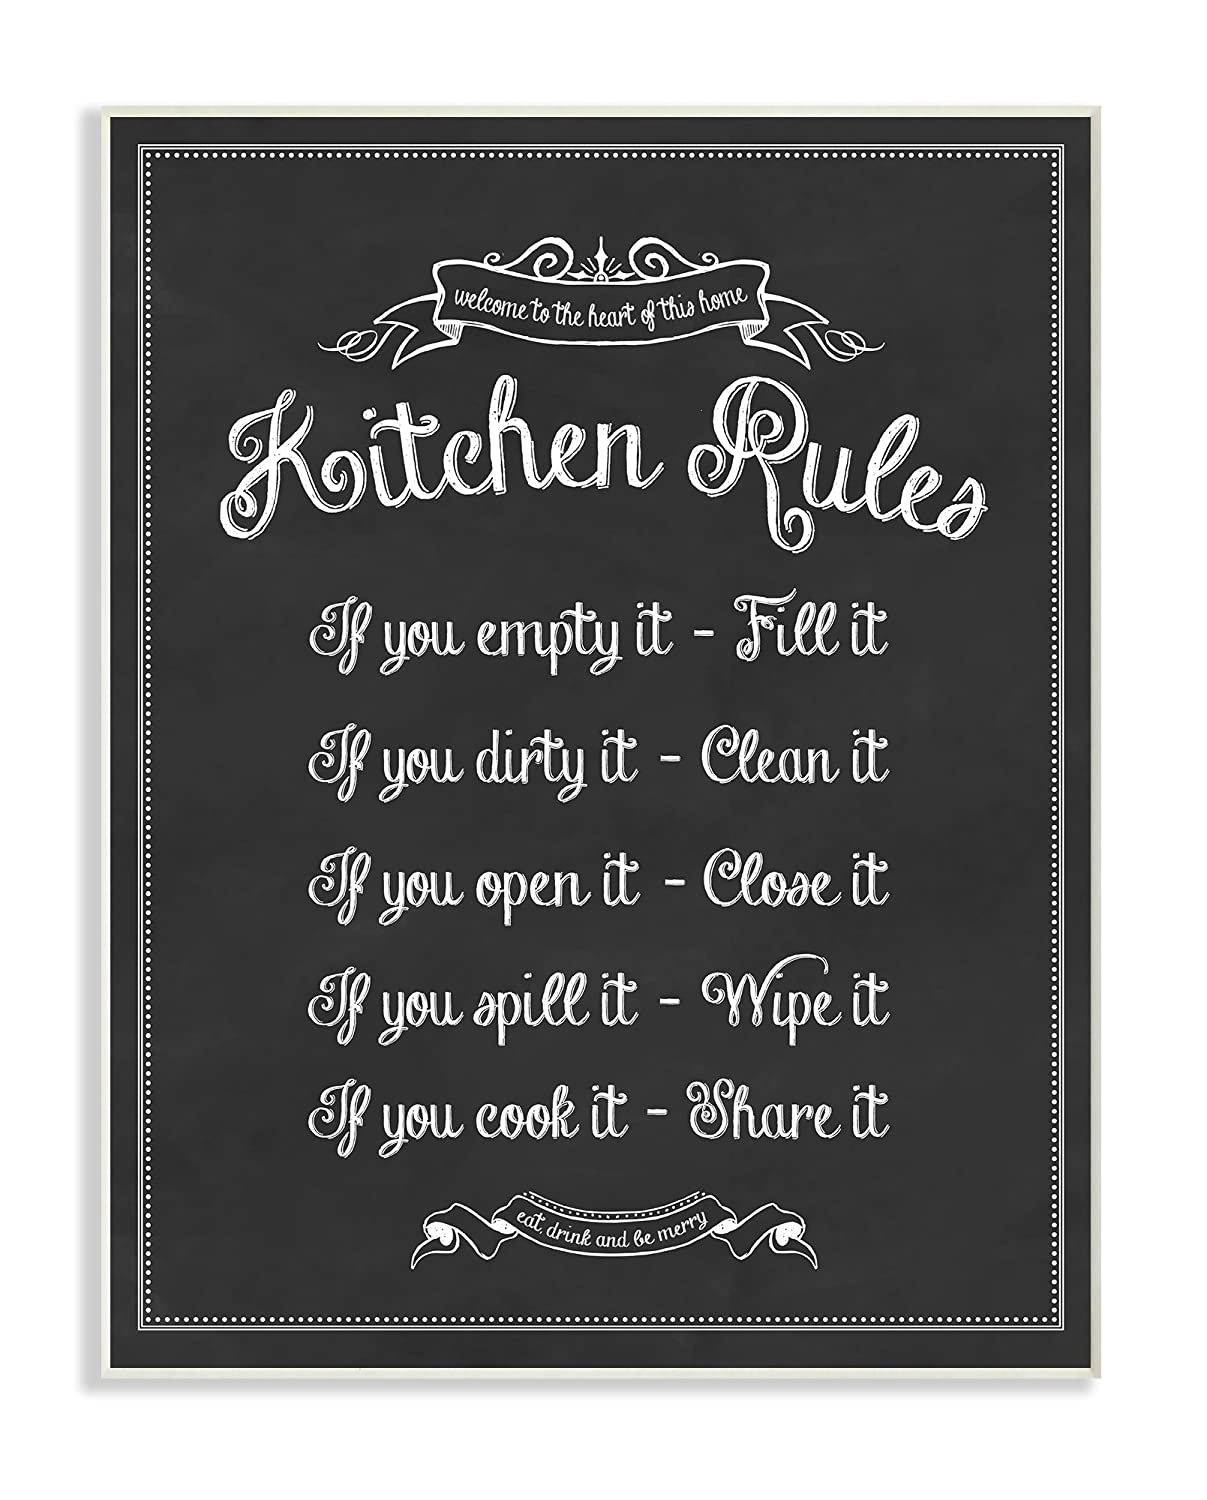 Stupell Home Décor Kitchen Rules Chalkboard Vintage Sign Wall Plaque Art, 10 x 0.5 x 15, Proudly Made in USA